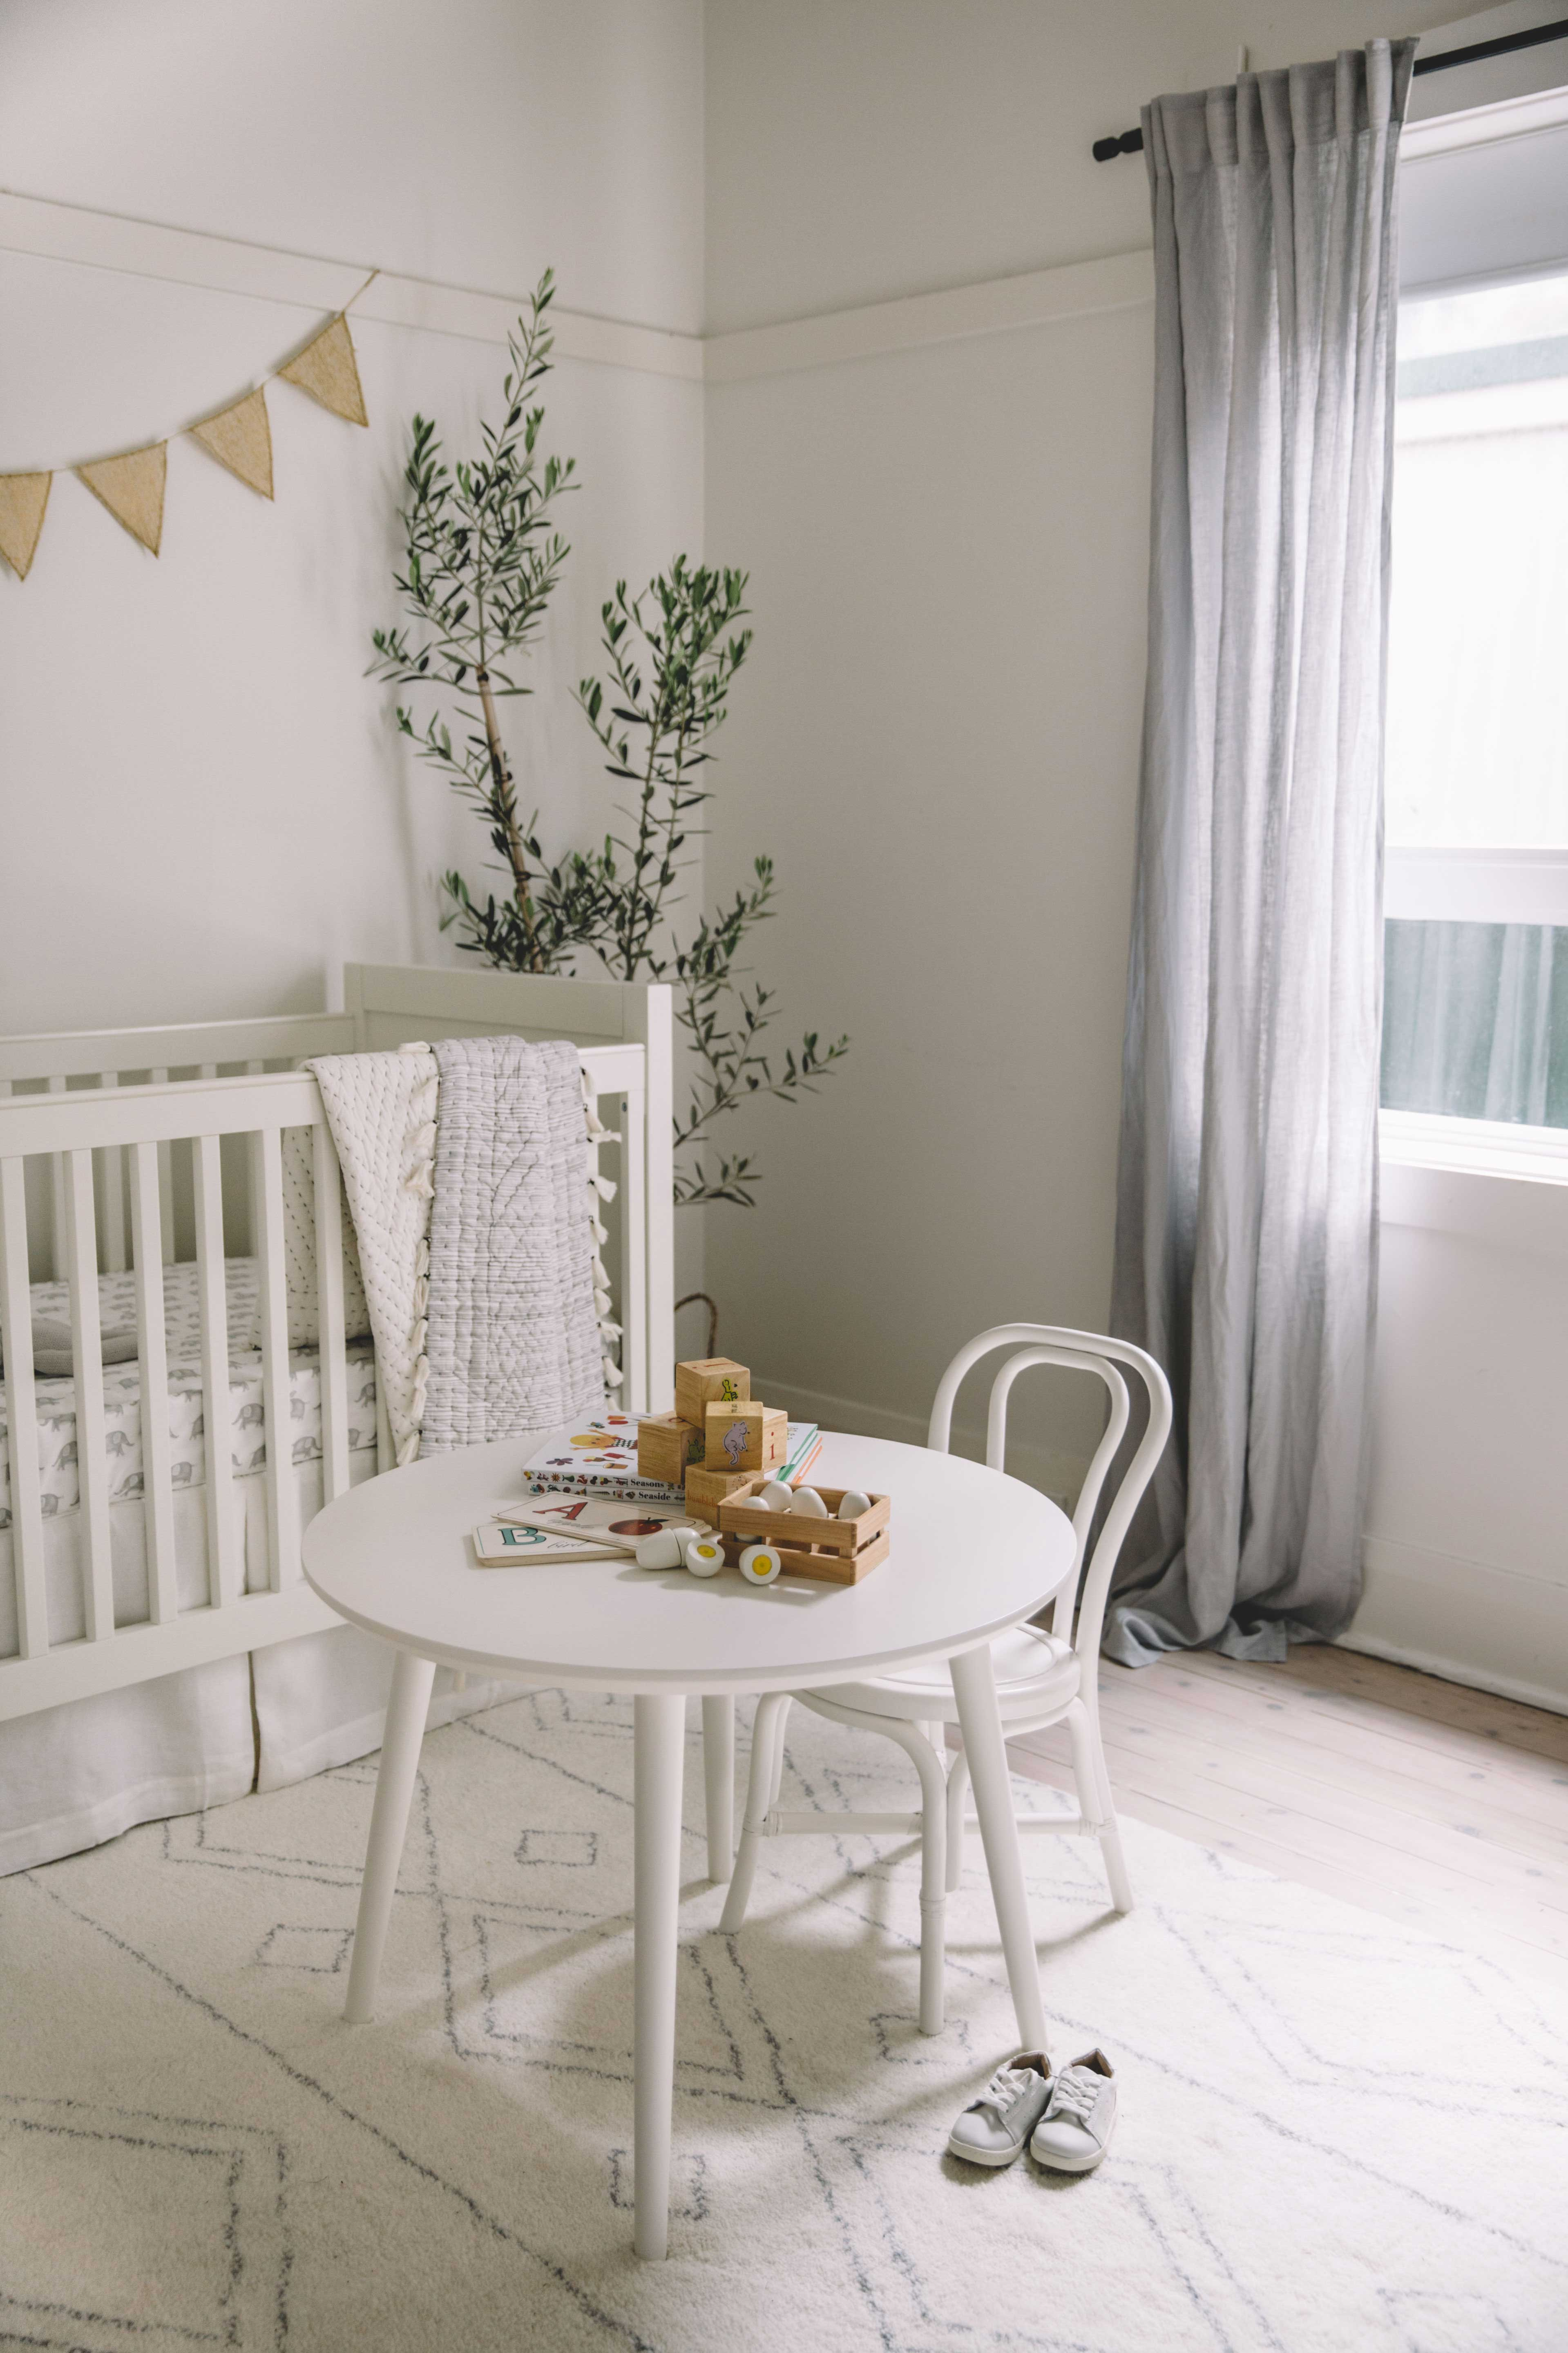 Elegant Pottery Barn Kids Chairs For Table Shop Pottery Barn Kids Emery Cot Pottery  Barn With Pottery Barn Kids Table Chairs